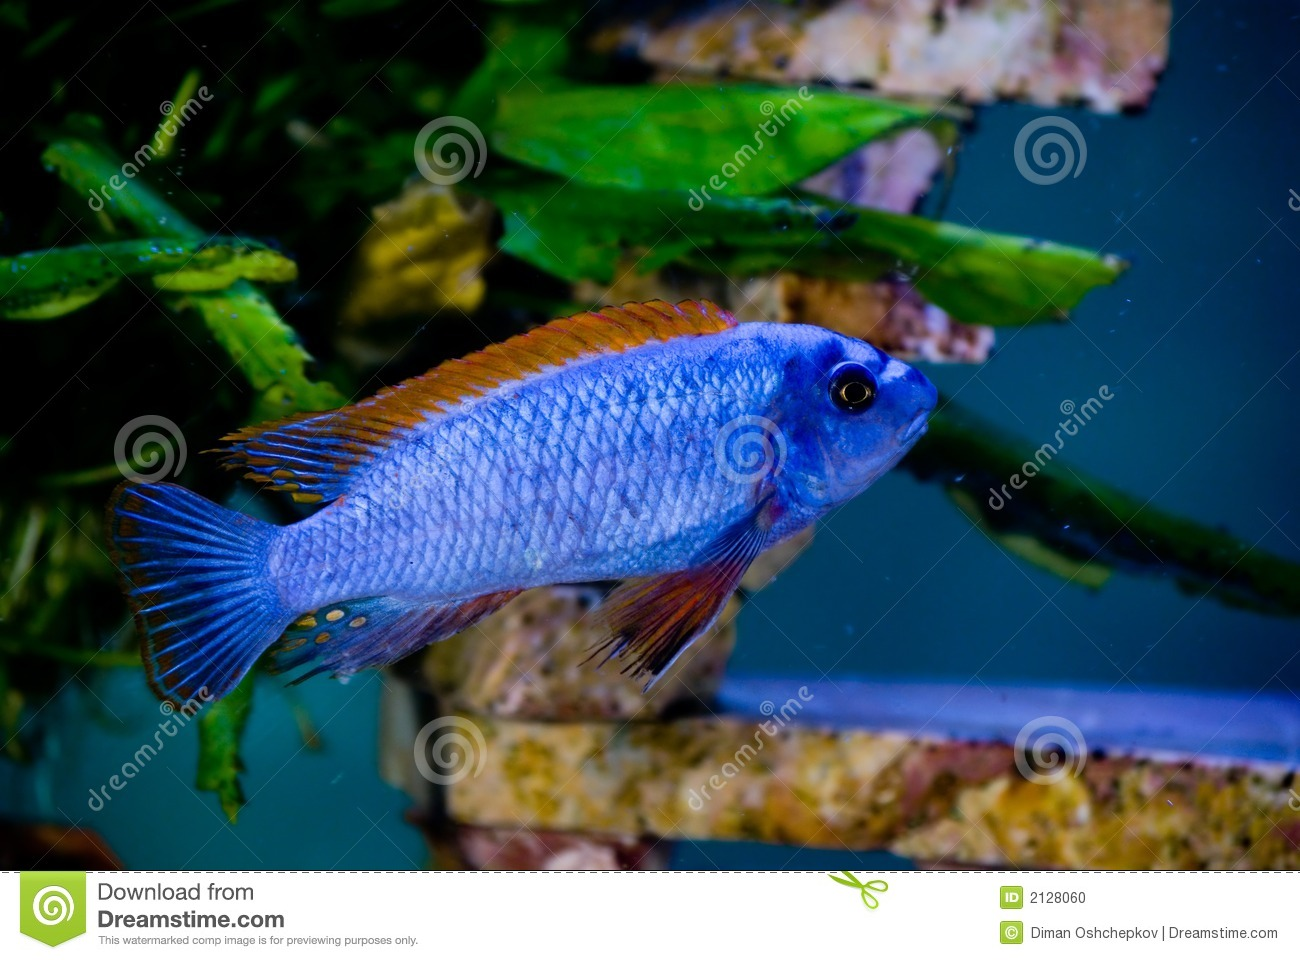 Blue fish red fins 3 stock photo image 2128060 for Red fish blue fish